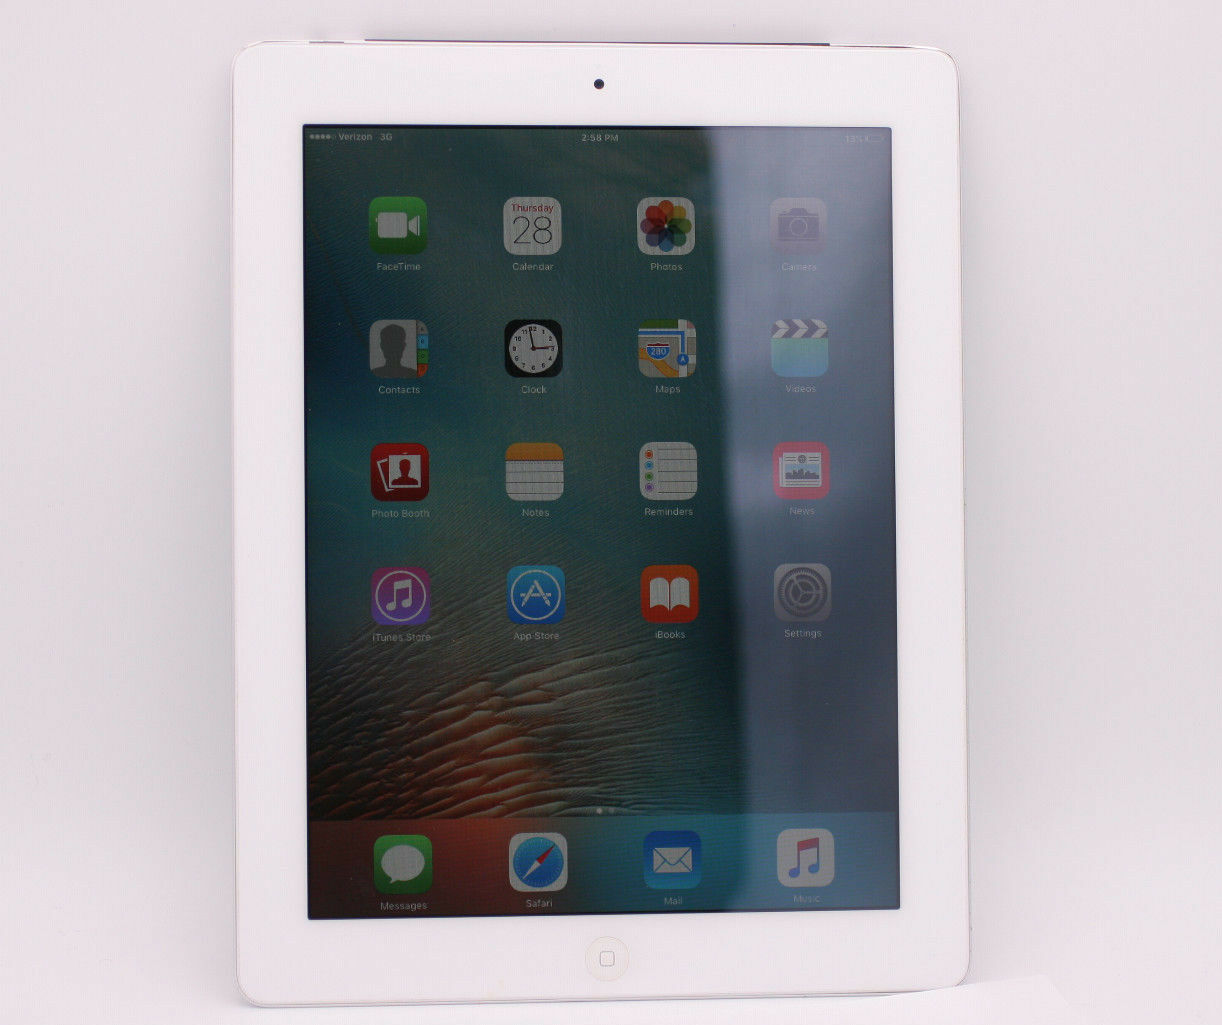 Apple iPad 2 64GB, Wi-Fi + 3G Verizon 9.7in - White - (MC987LL/A)